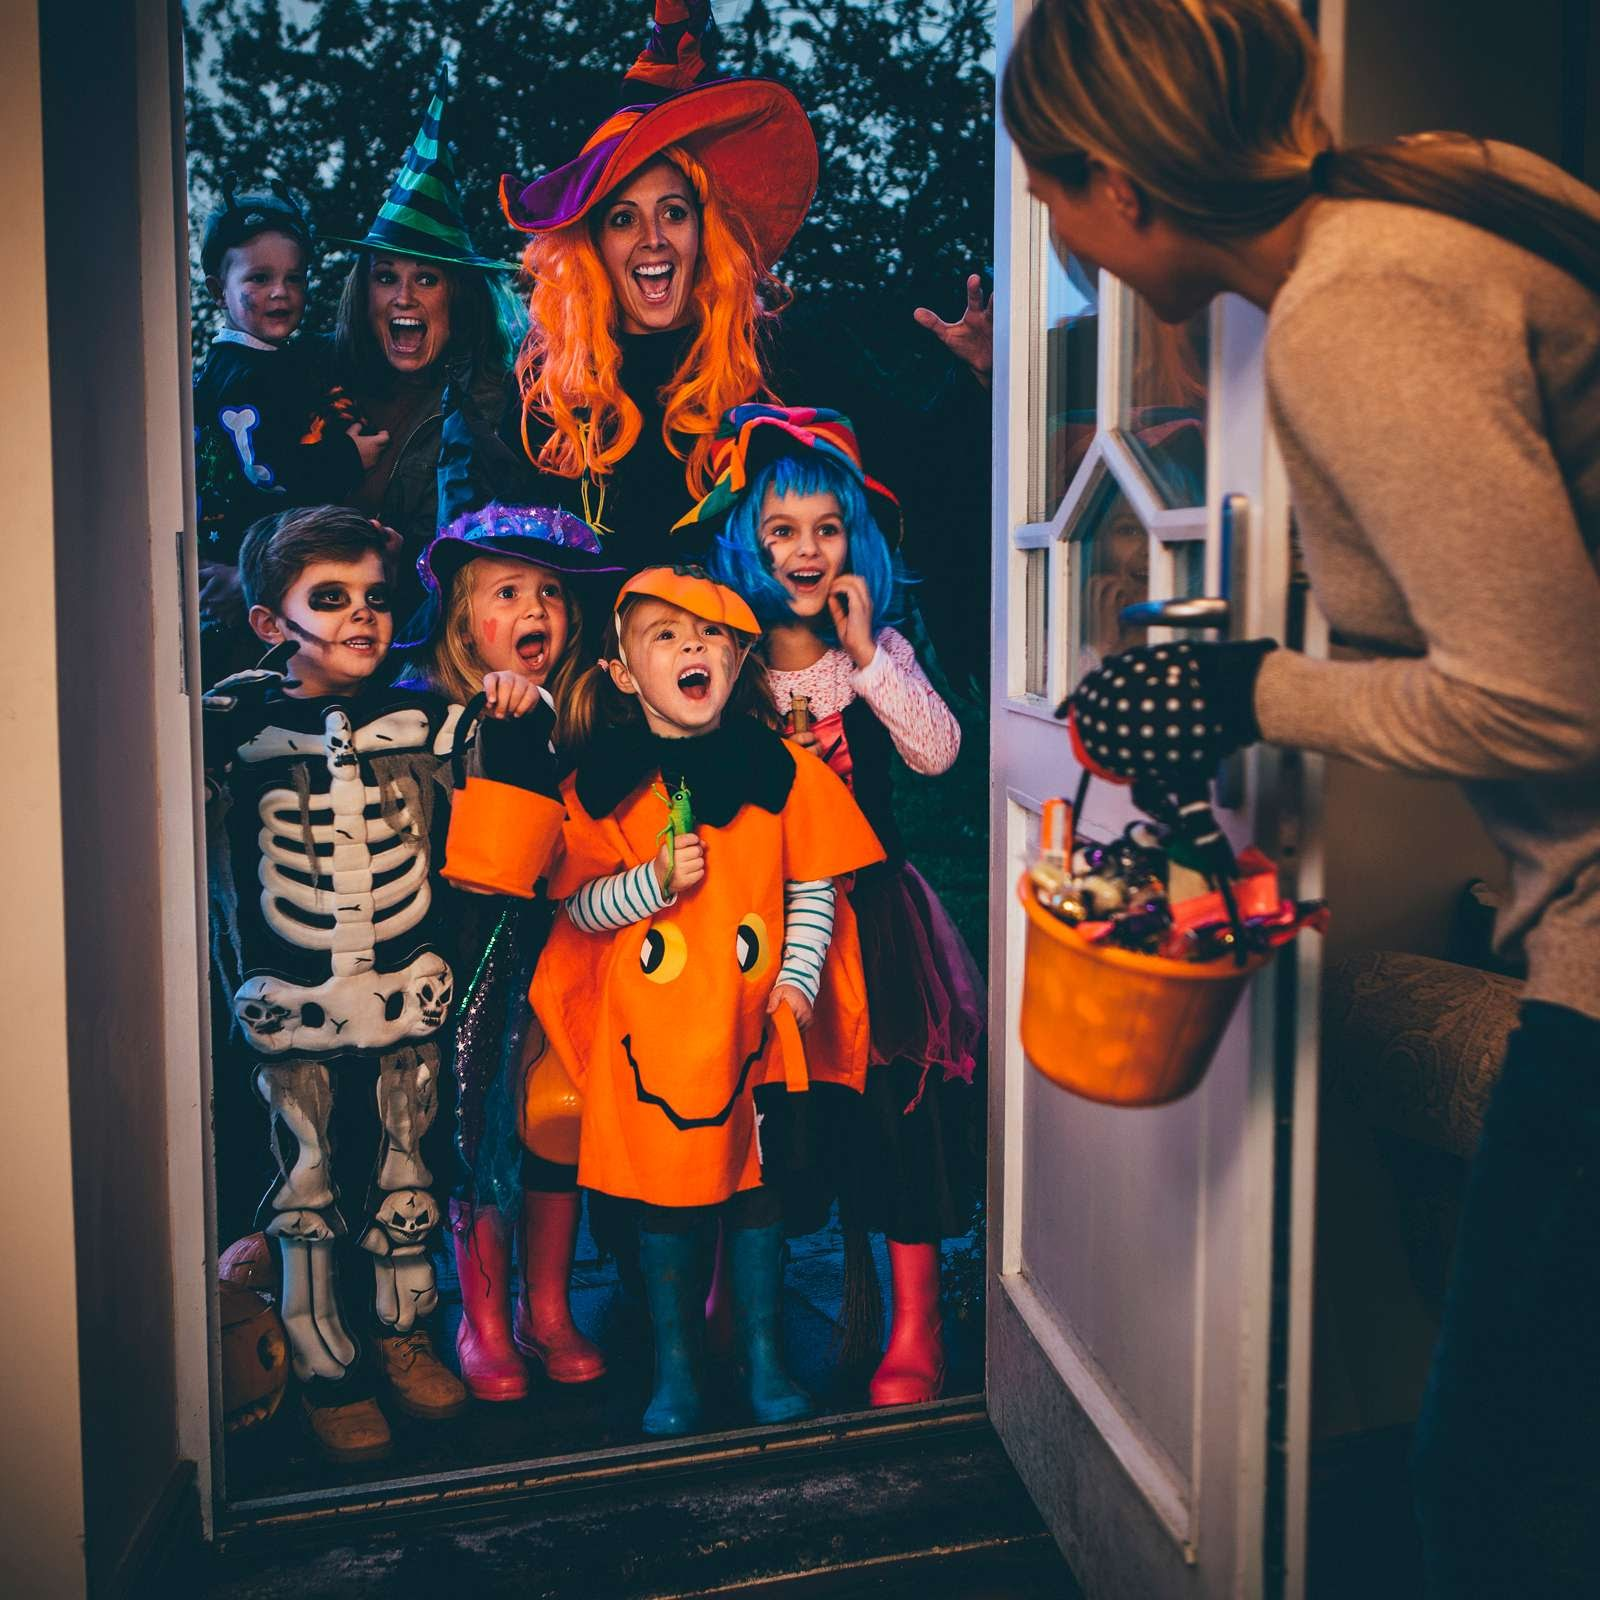 Trick-or-treating for candy has become one of the most popular activities to do on the holiday of Halloween since the '50s. Image courtesy of britannica.com.